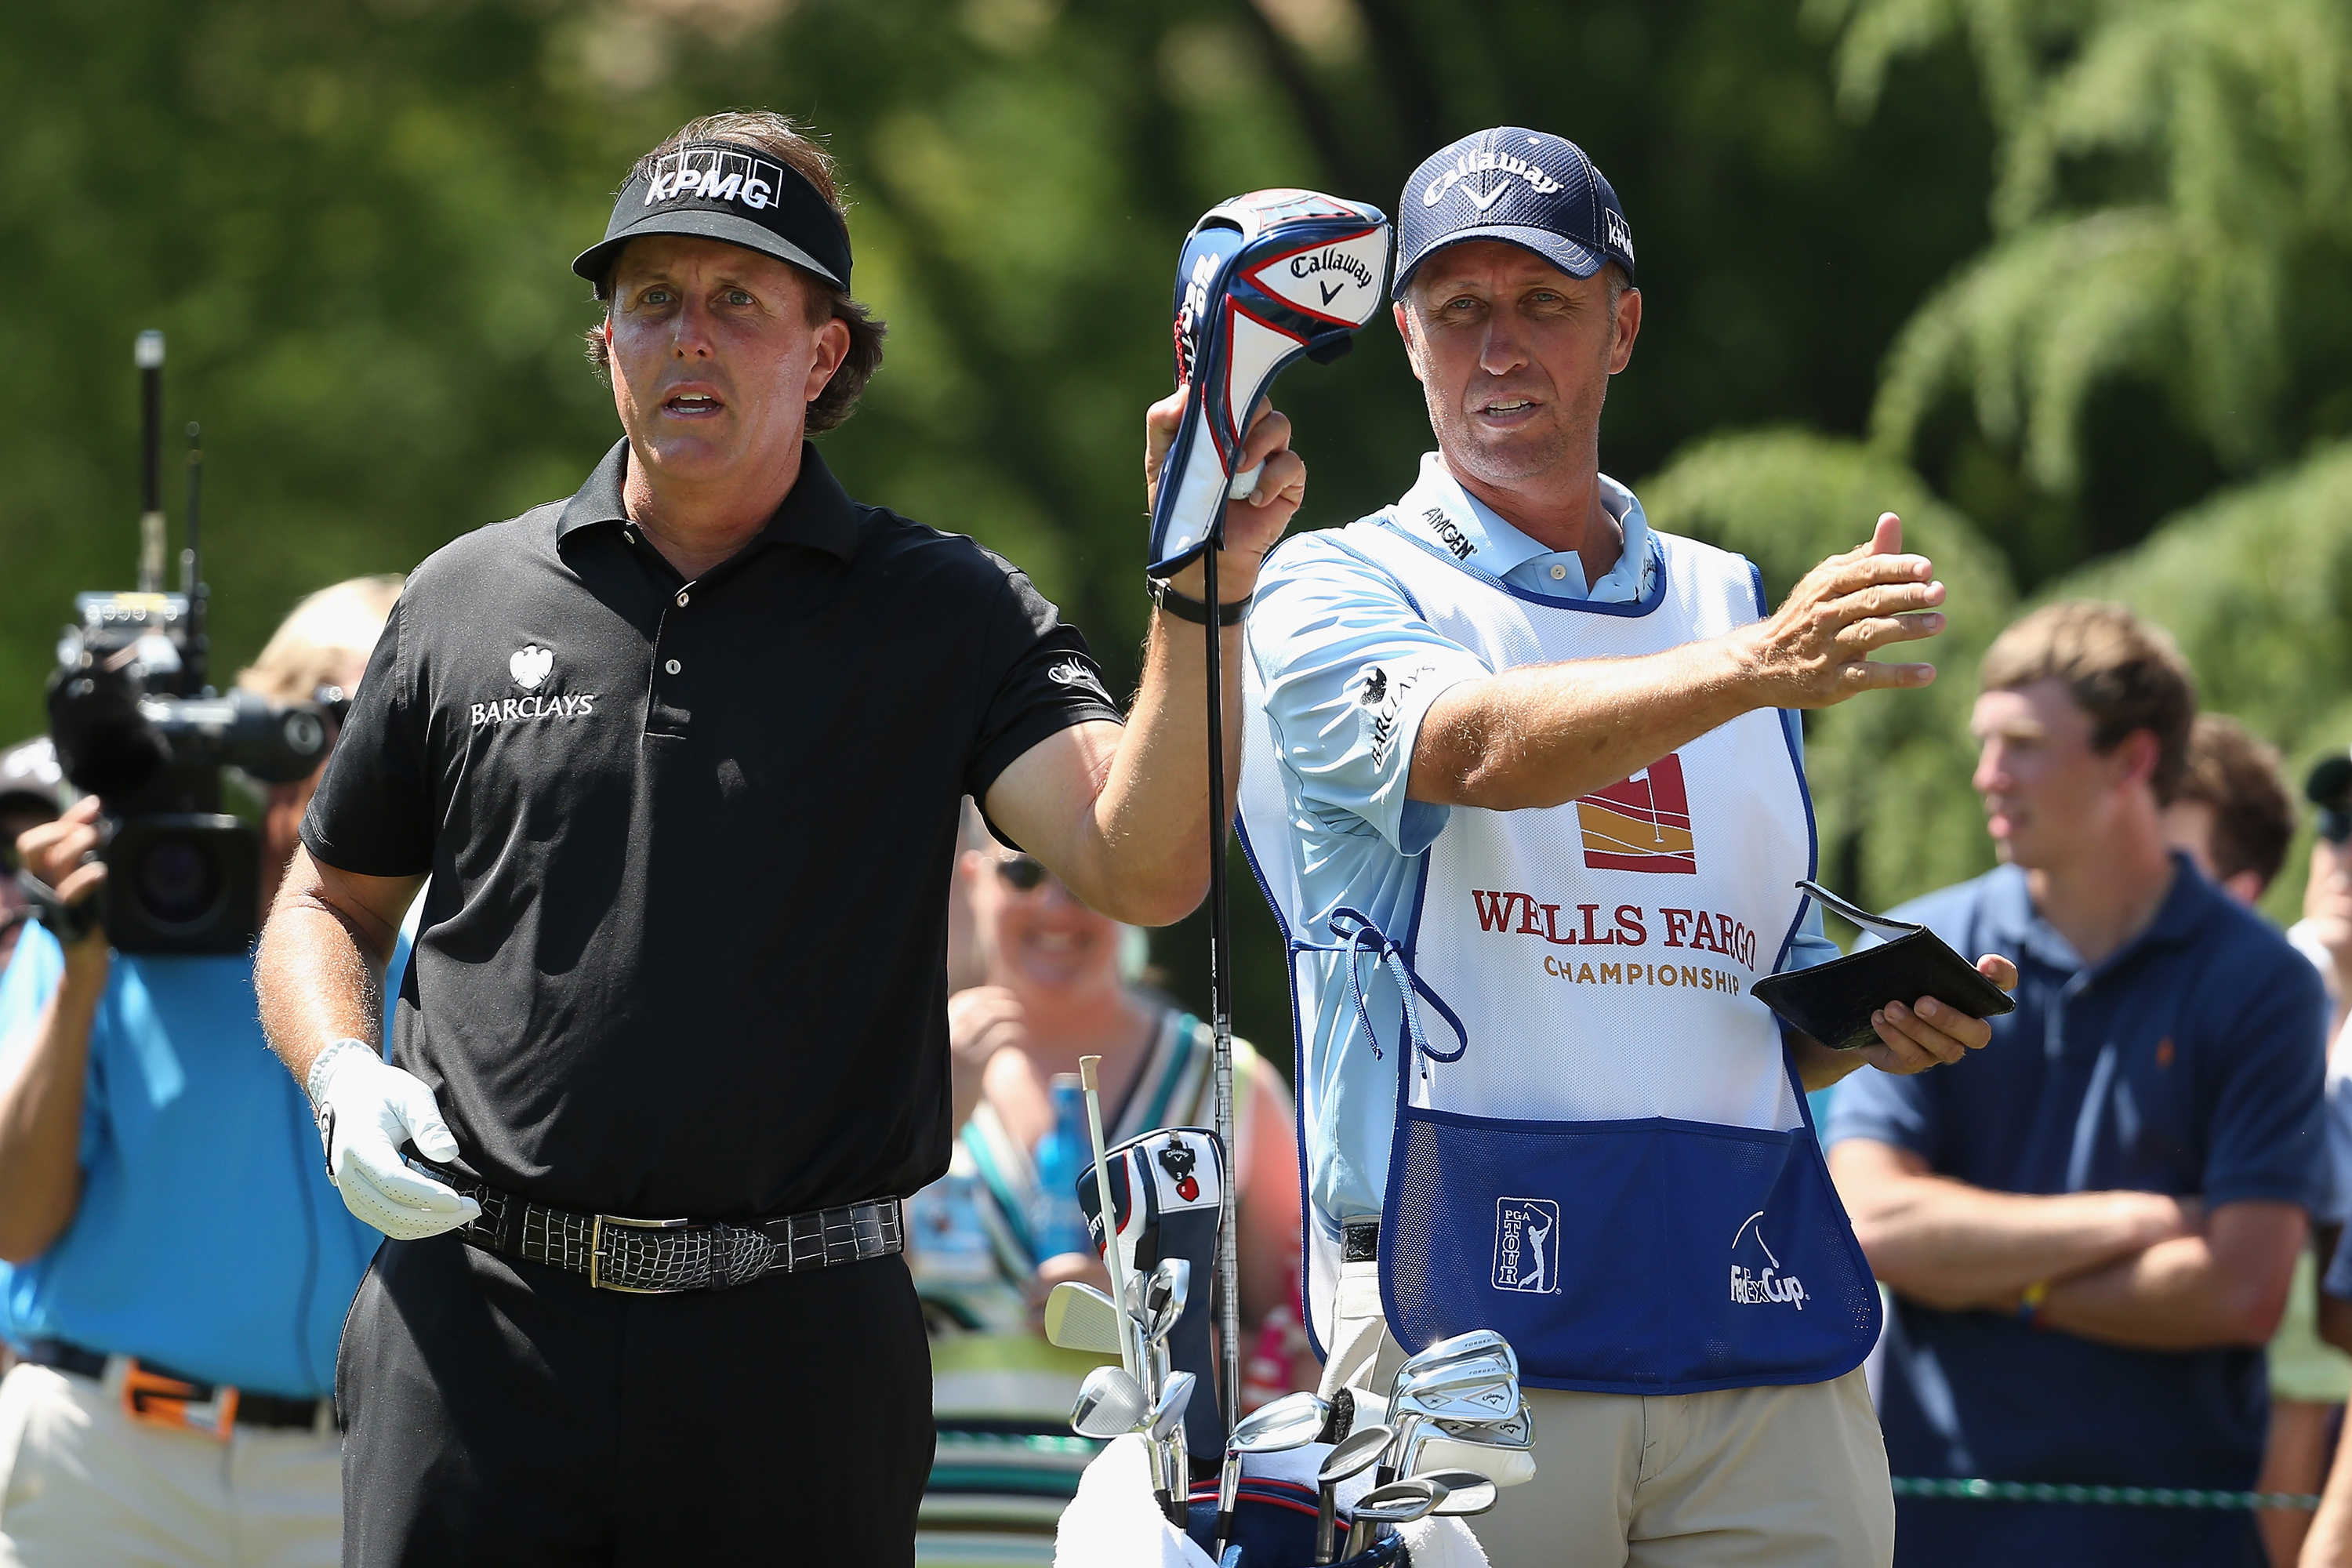 Phil Mickelson commits to the Wells Fargo Championship next month (Photo: Getty Images)